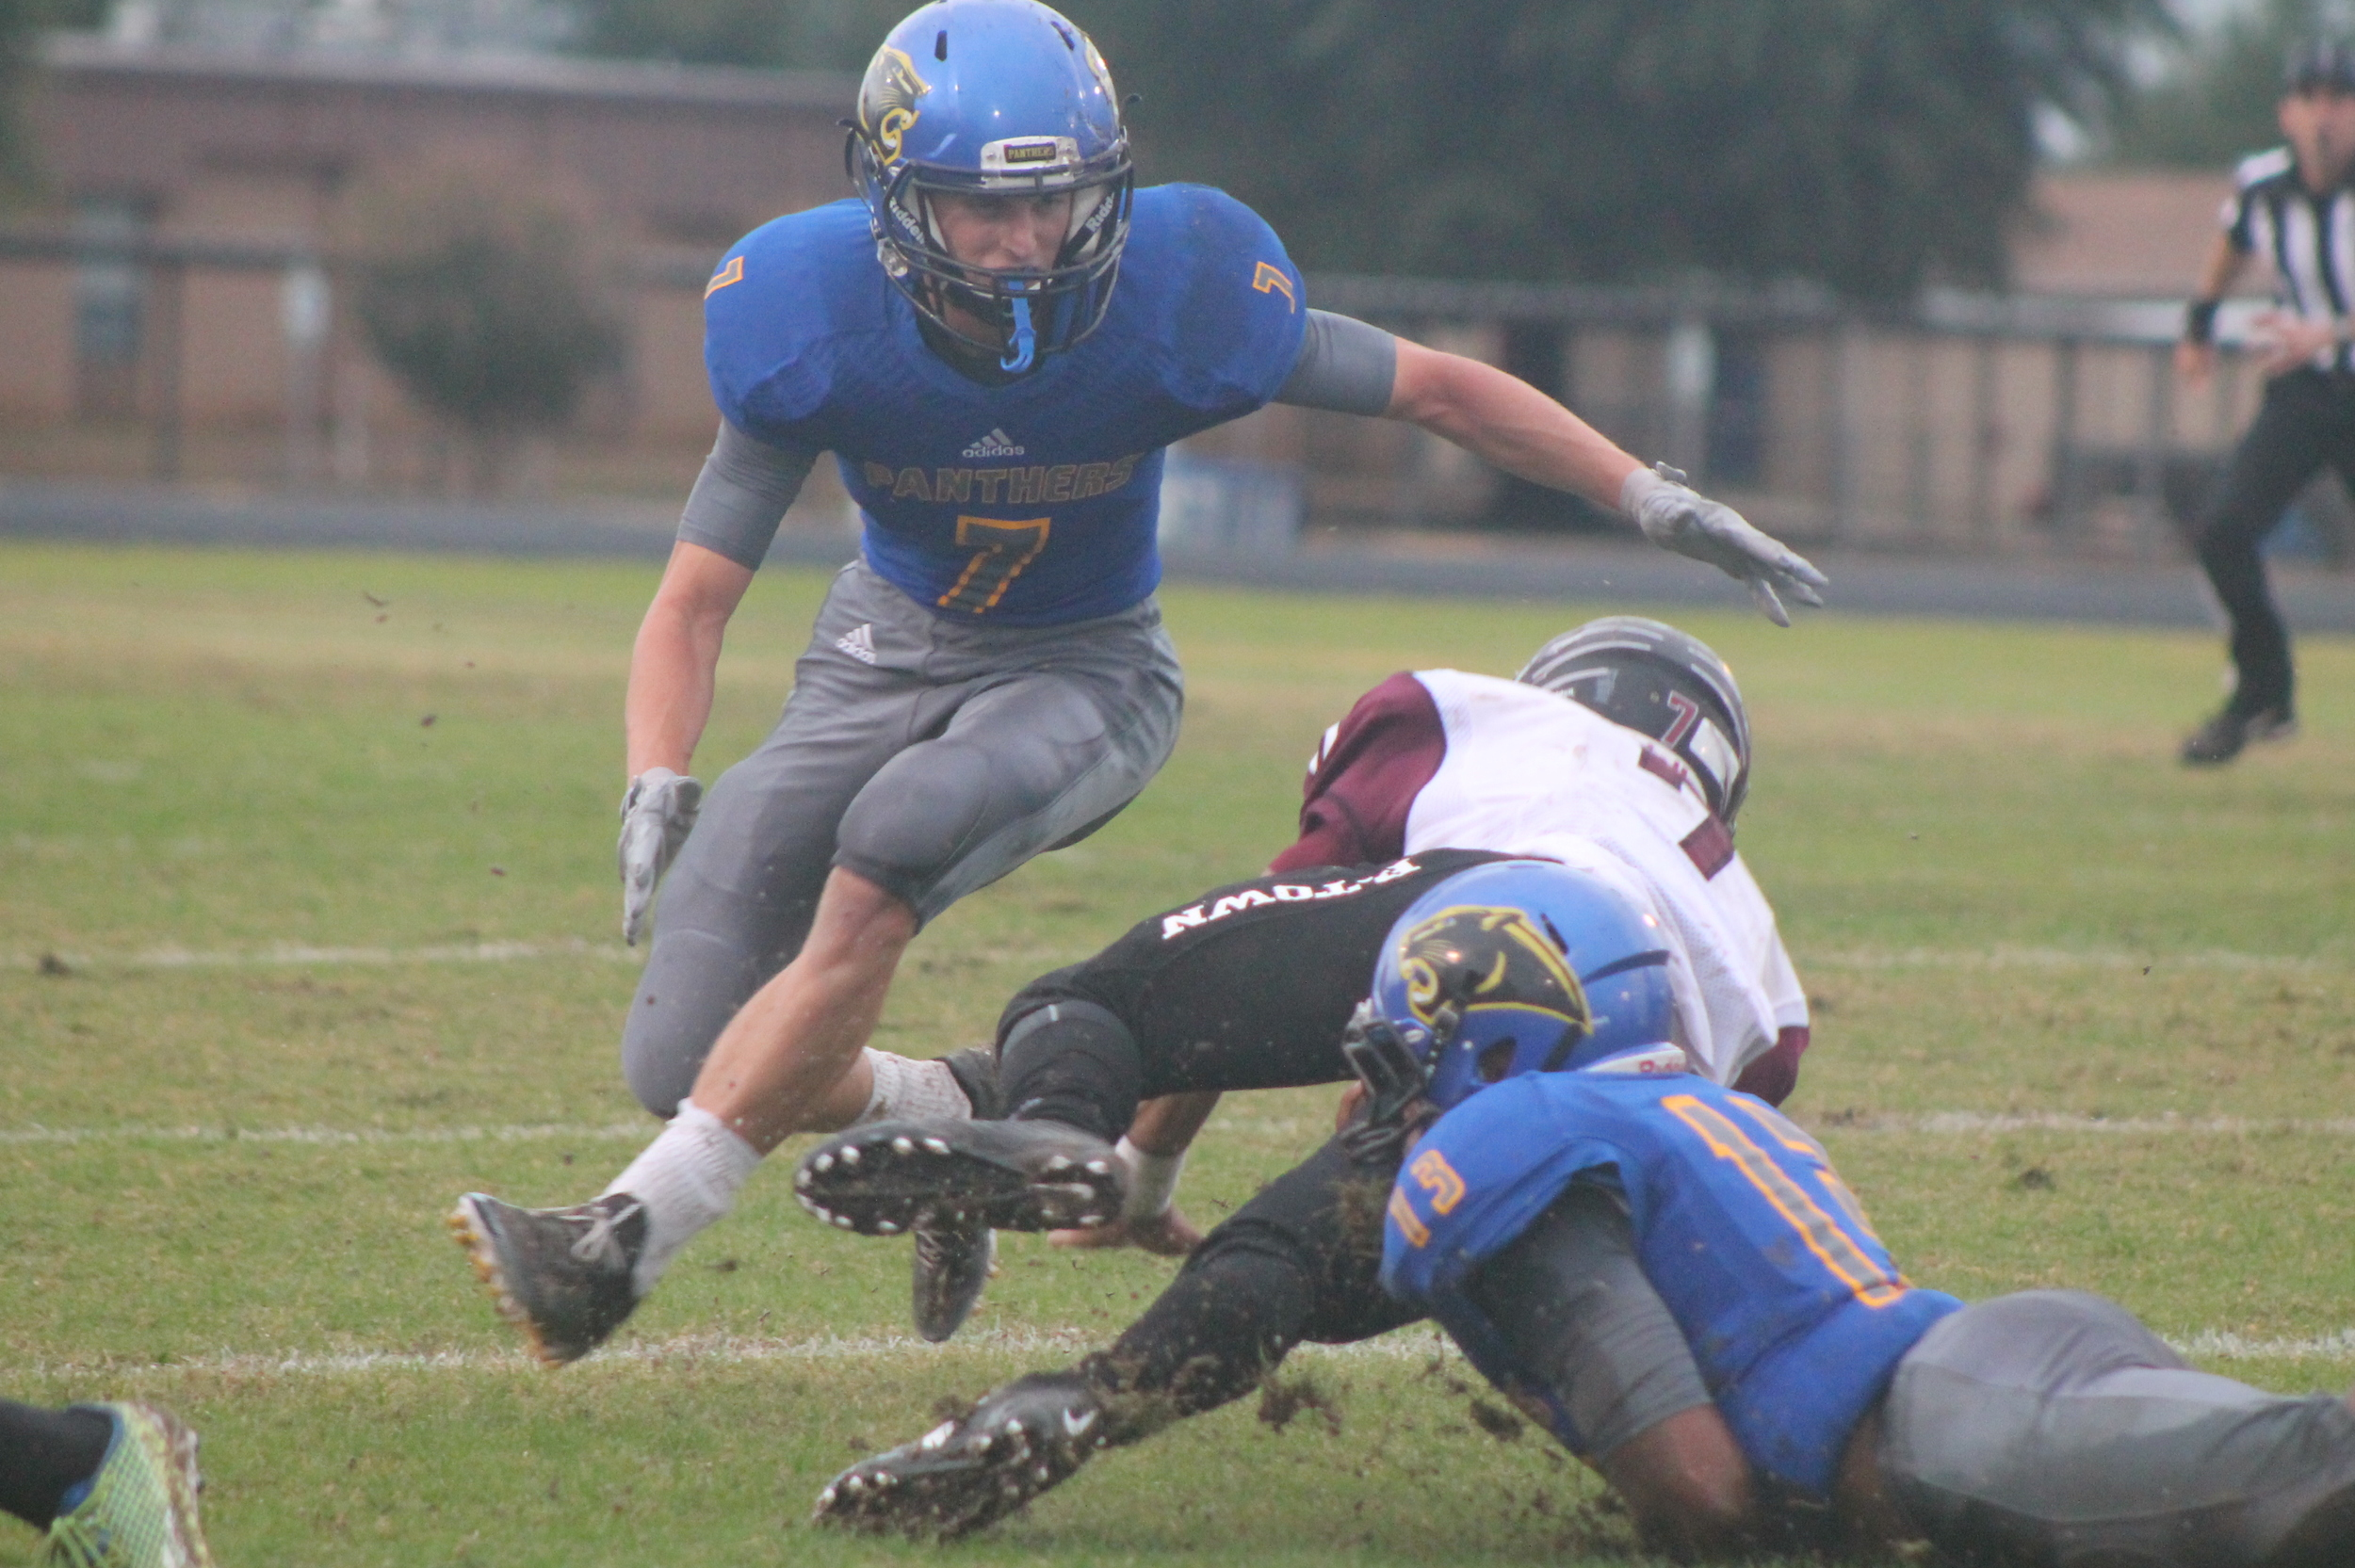 (Photo by Maddy Routon) Seybian Holt (13) and Trey Scudder (7) Making a tackle on a Princeton player Friday night.